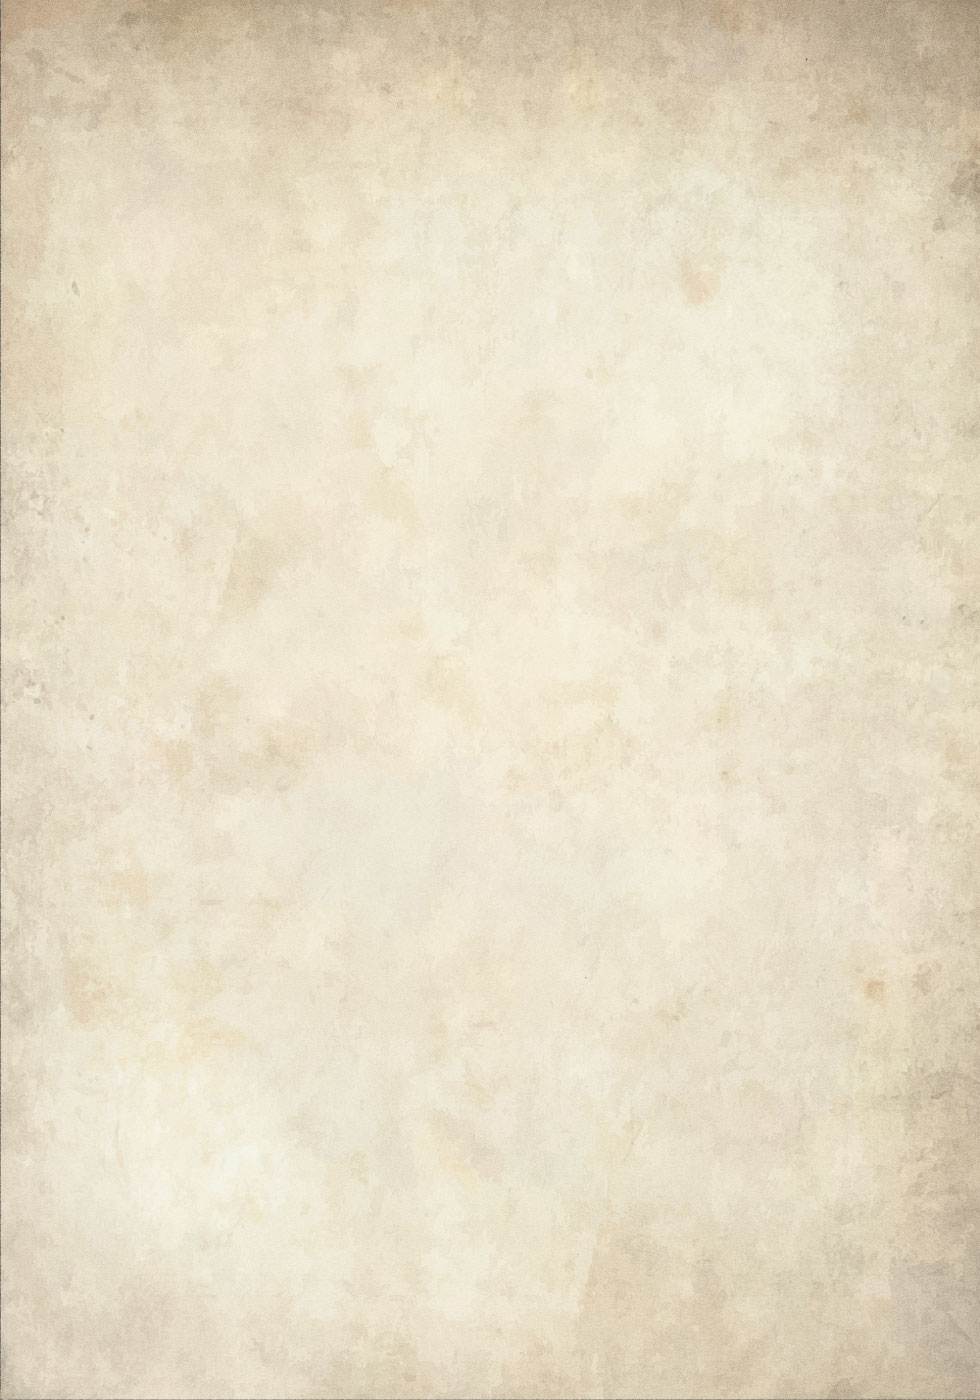 DD-Grunge-Paper-Texture-45342_upright.pn